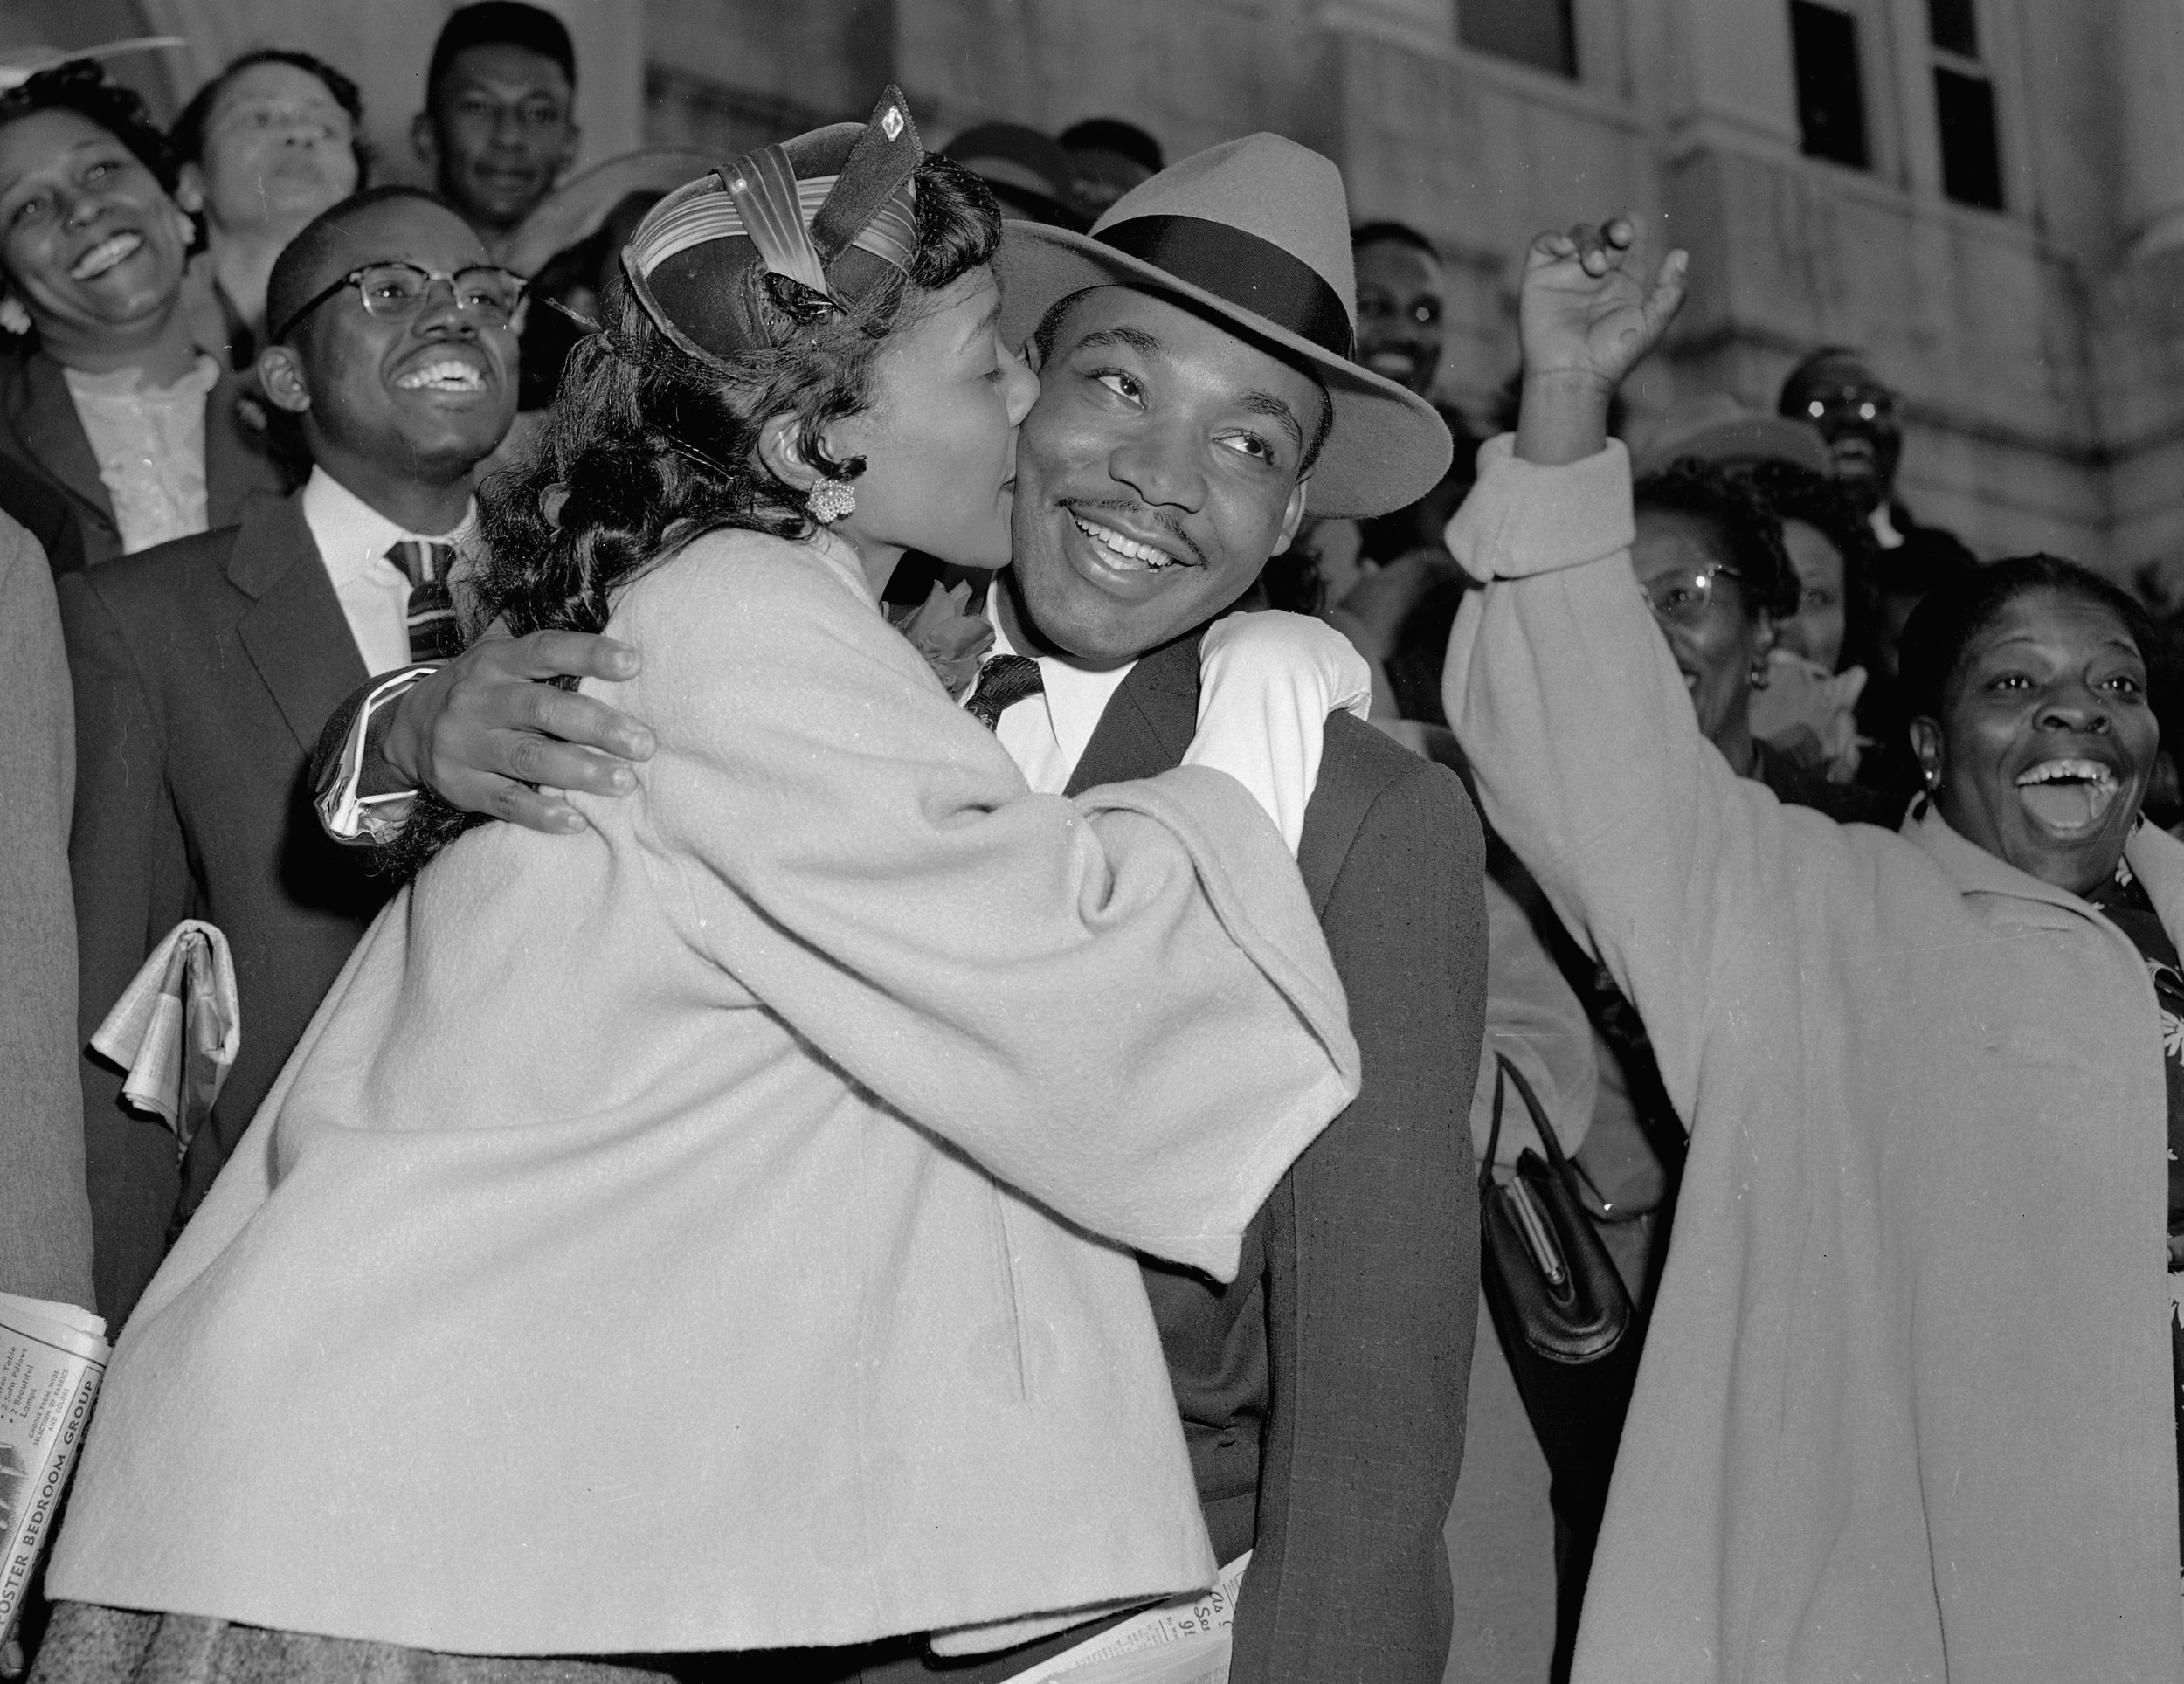 PAGE: 29:DR. MARTIN LUTHER KING, JR. AND HIS WIFE, CORETTA,RETURNED TO ATLANTA FOLLOWING THE SUCCESSFUL 381-DAY MONTGOMERY BUS BOYCOTT (PERMISIION OF THE ASSOCIATED PRESS).